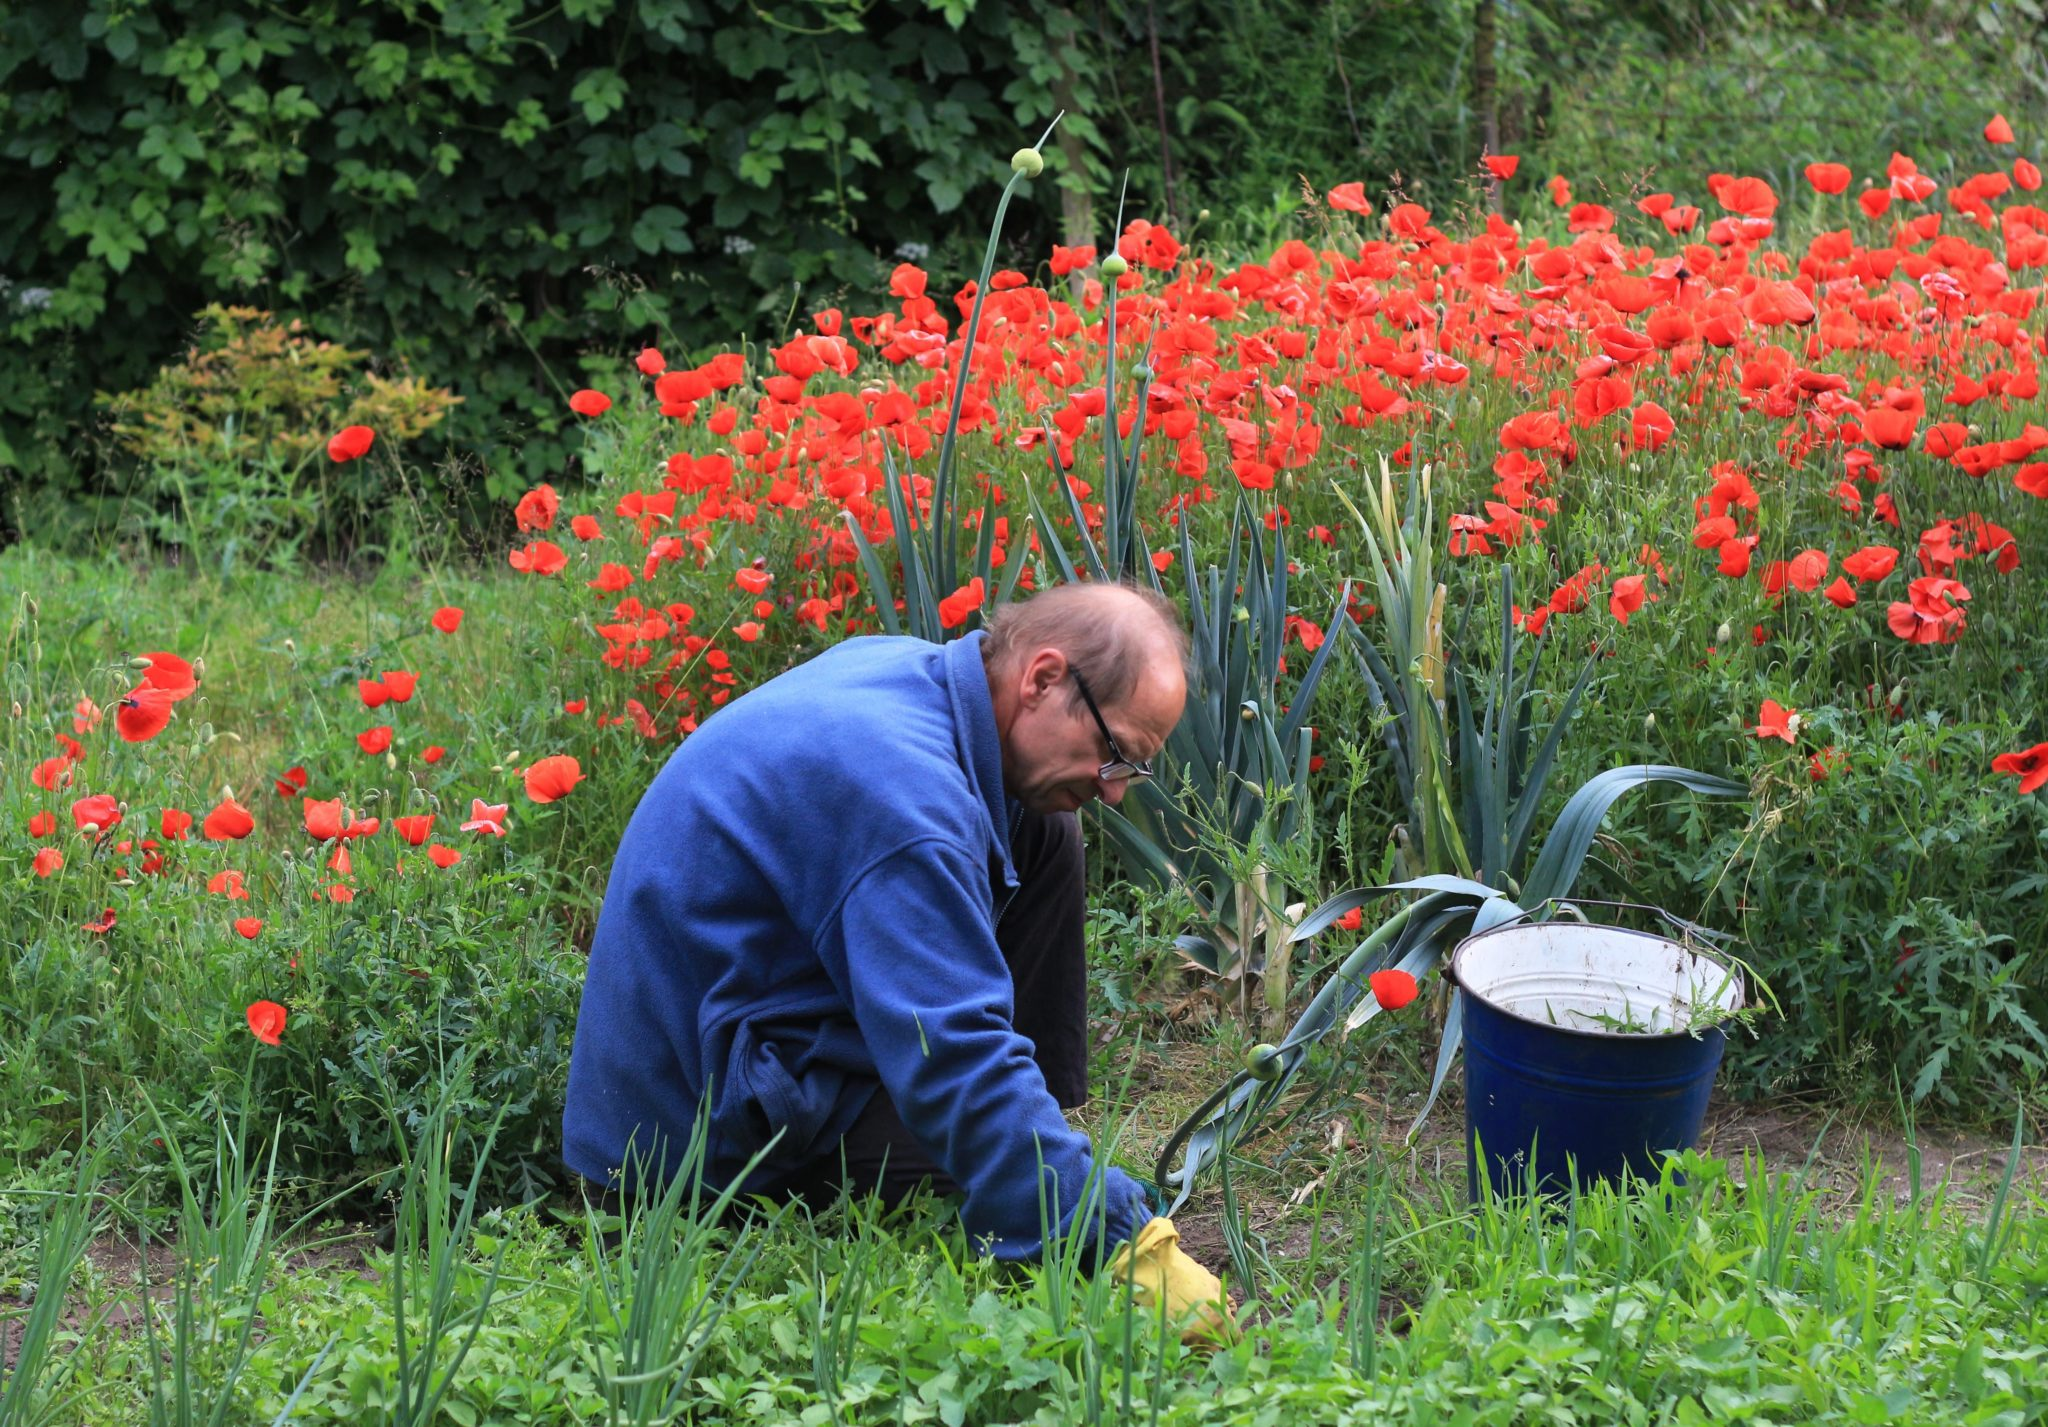 tips for preventing weeds - man kneeling down weeding landscape